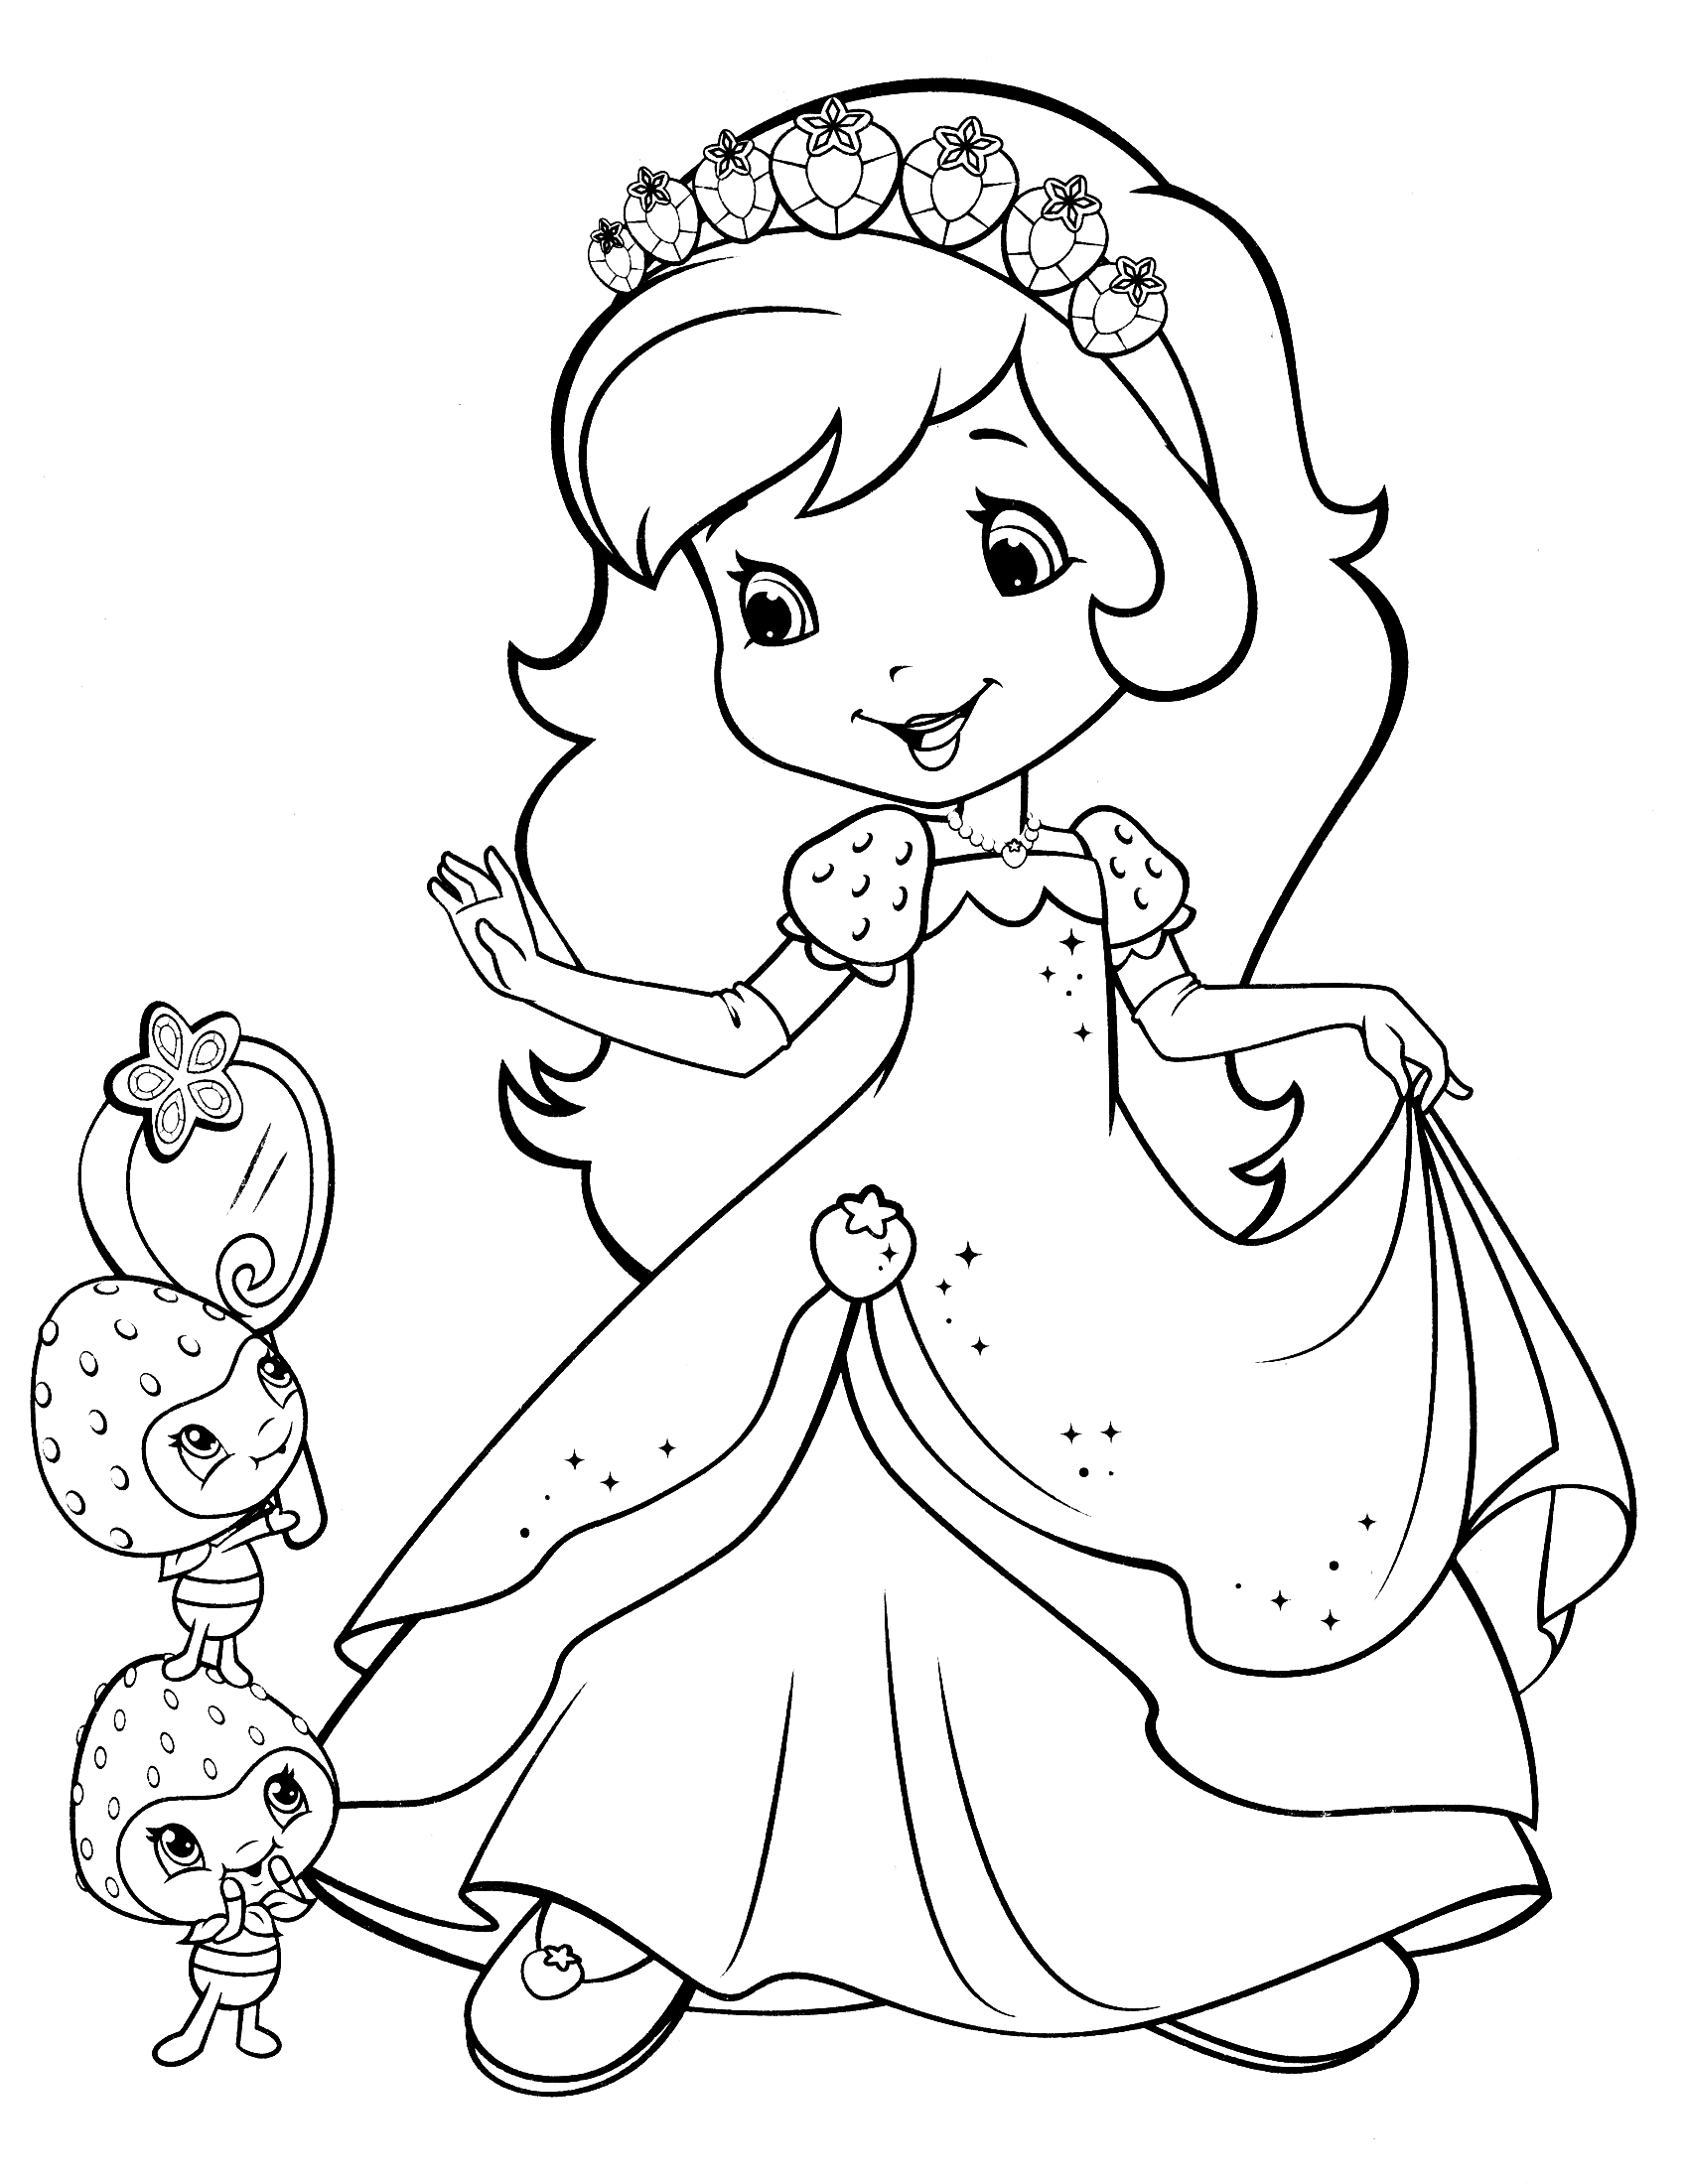 strawberry-shortcake coloring page,printable,coloring pages